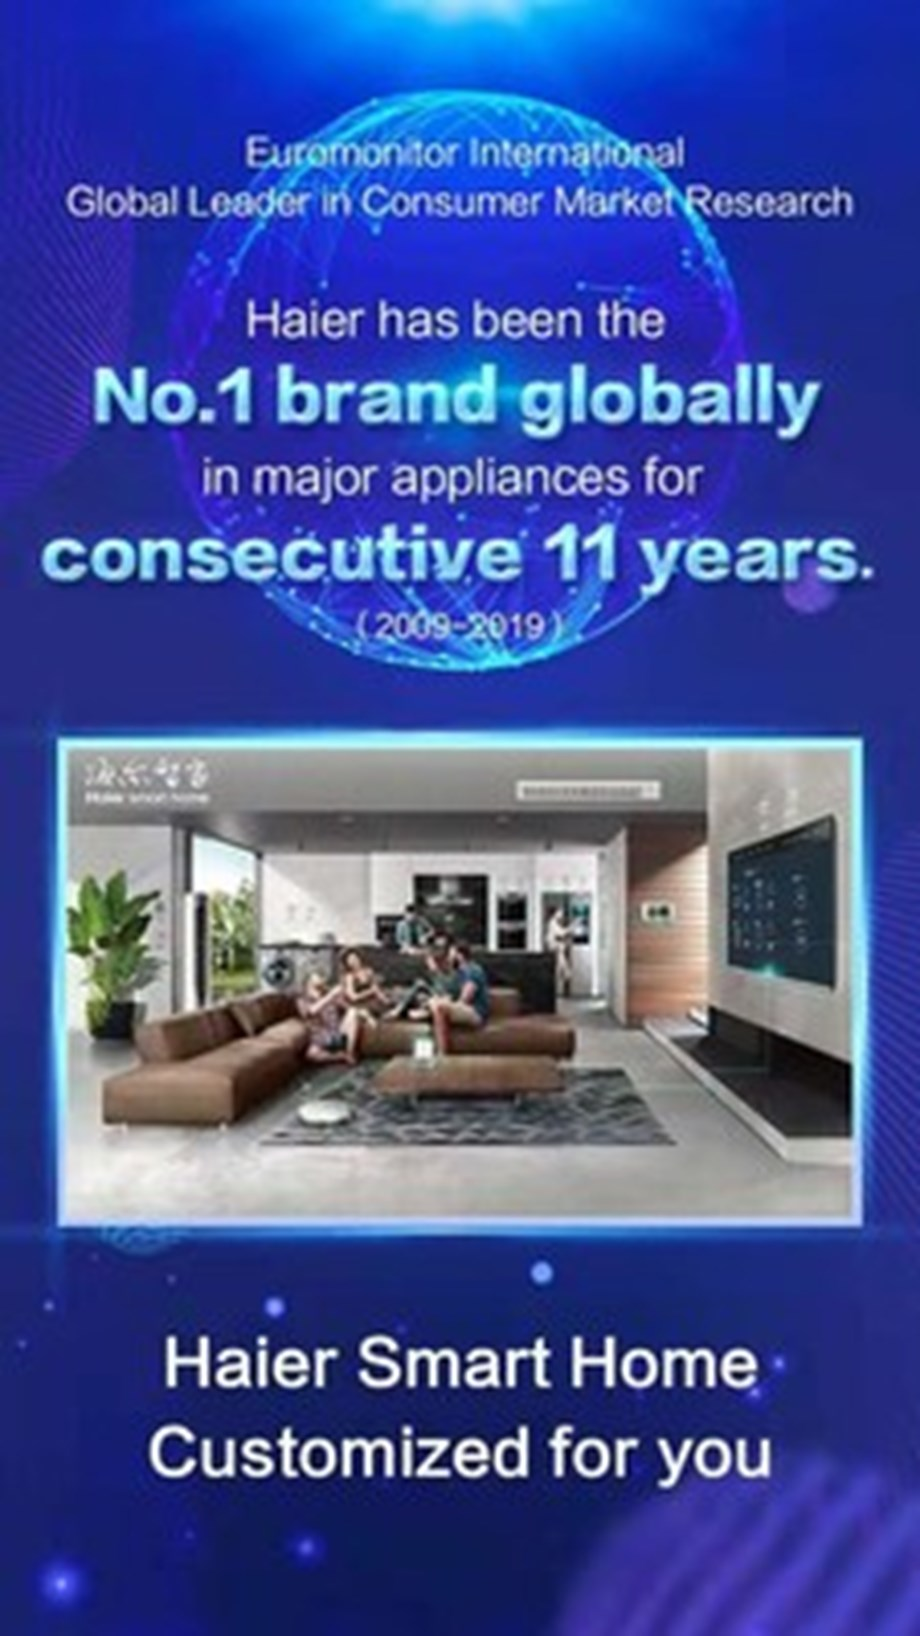 Haier Leads Euromonitor's Major Appliances Global Brand Rankings for 11th Consecutive Year